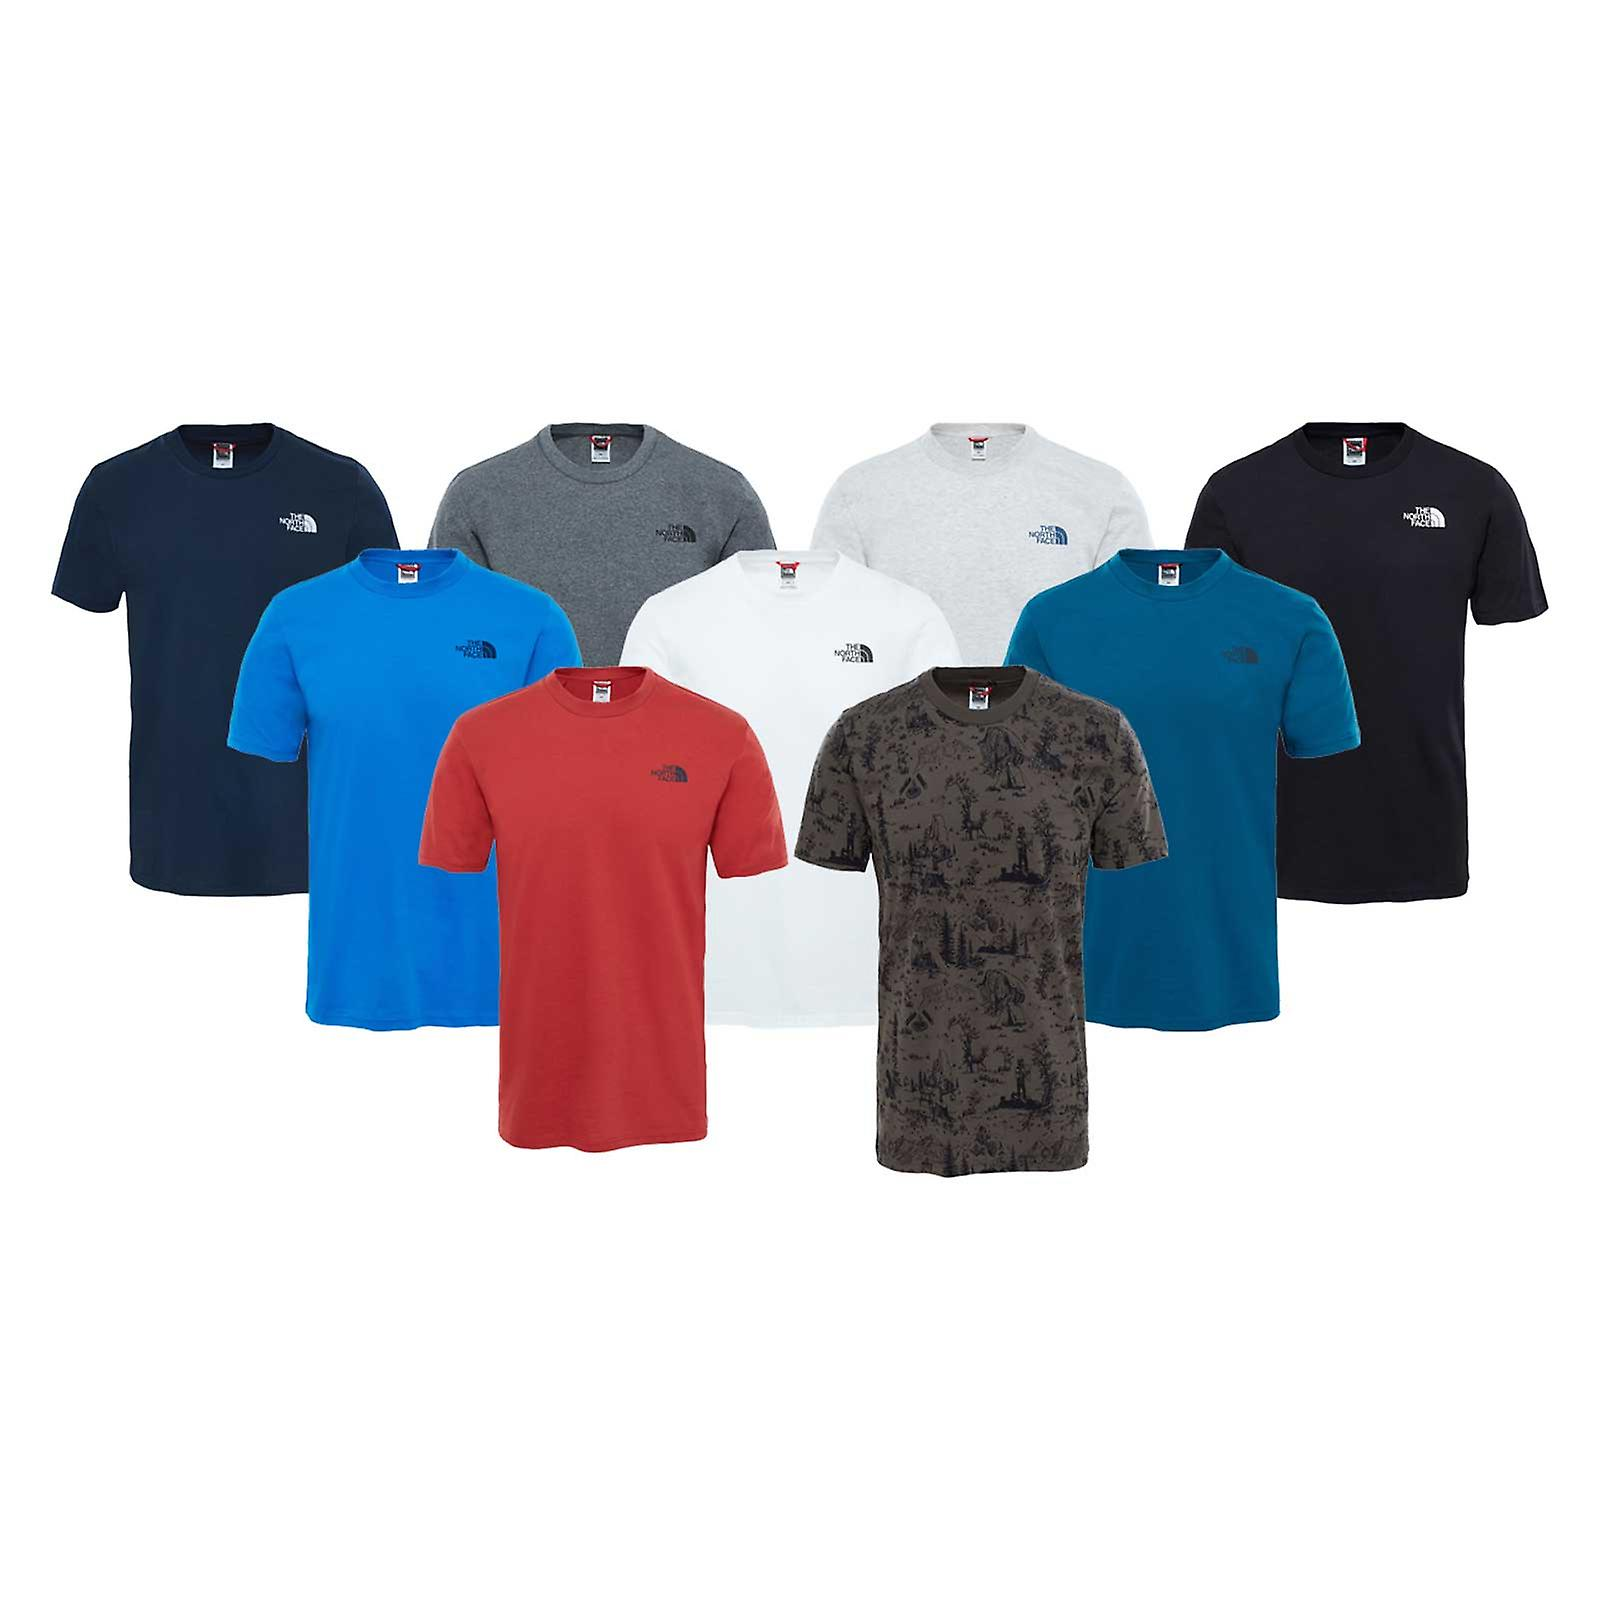 dfc2f3c9e7a3 The North Face Mens Short Sleeve Simple Dome T-Shirt